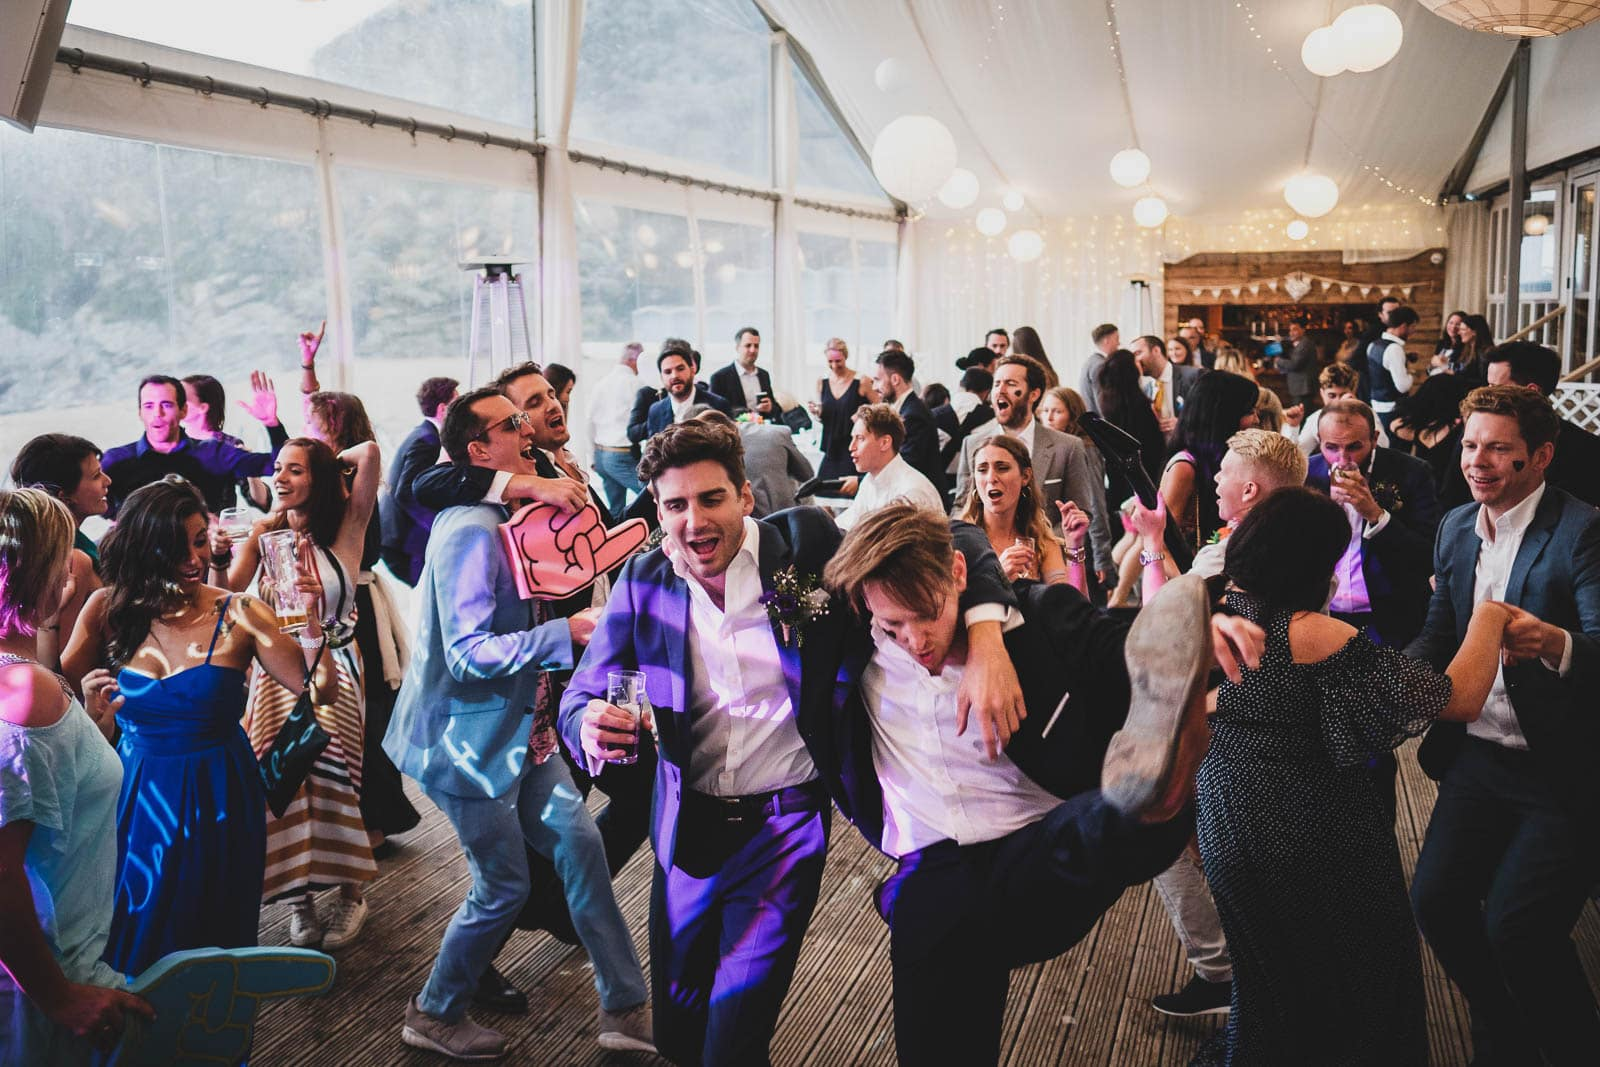 Crazy dancefloor action at a Lusty Glaze wedding